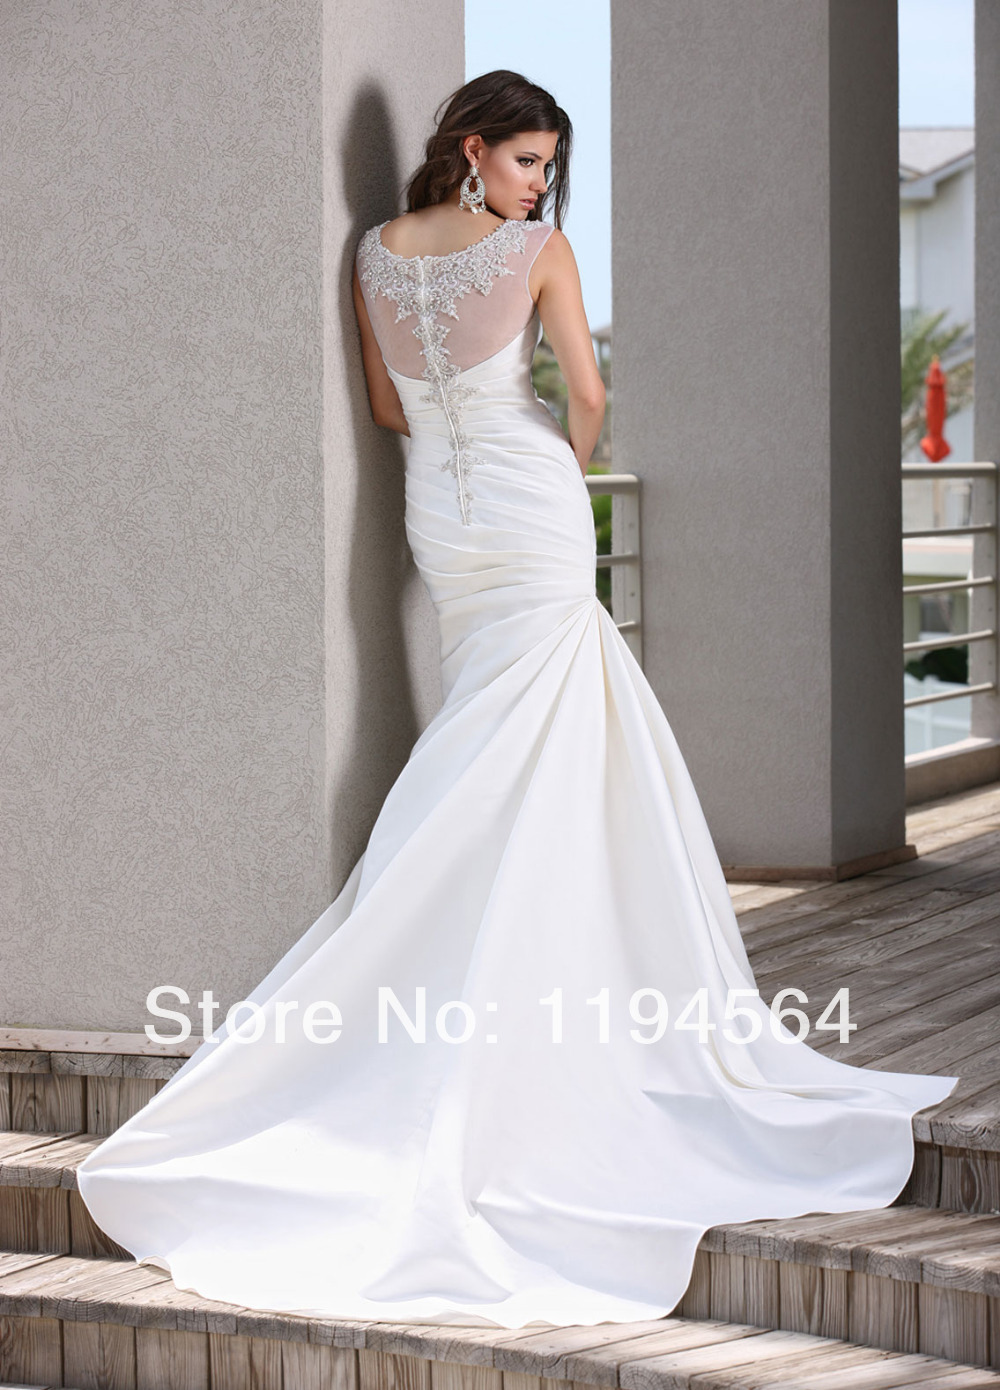 Liques And Beaded See Through Wedding Reception Dress Fashion 2017 White Mermaid Taffeta Bridal Gowns Free Shipping Wh1298 In Dresses From